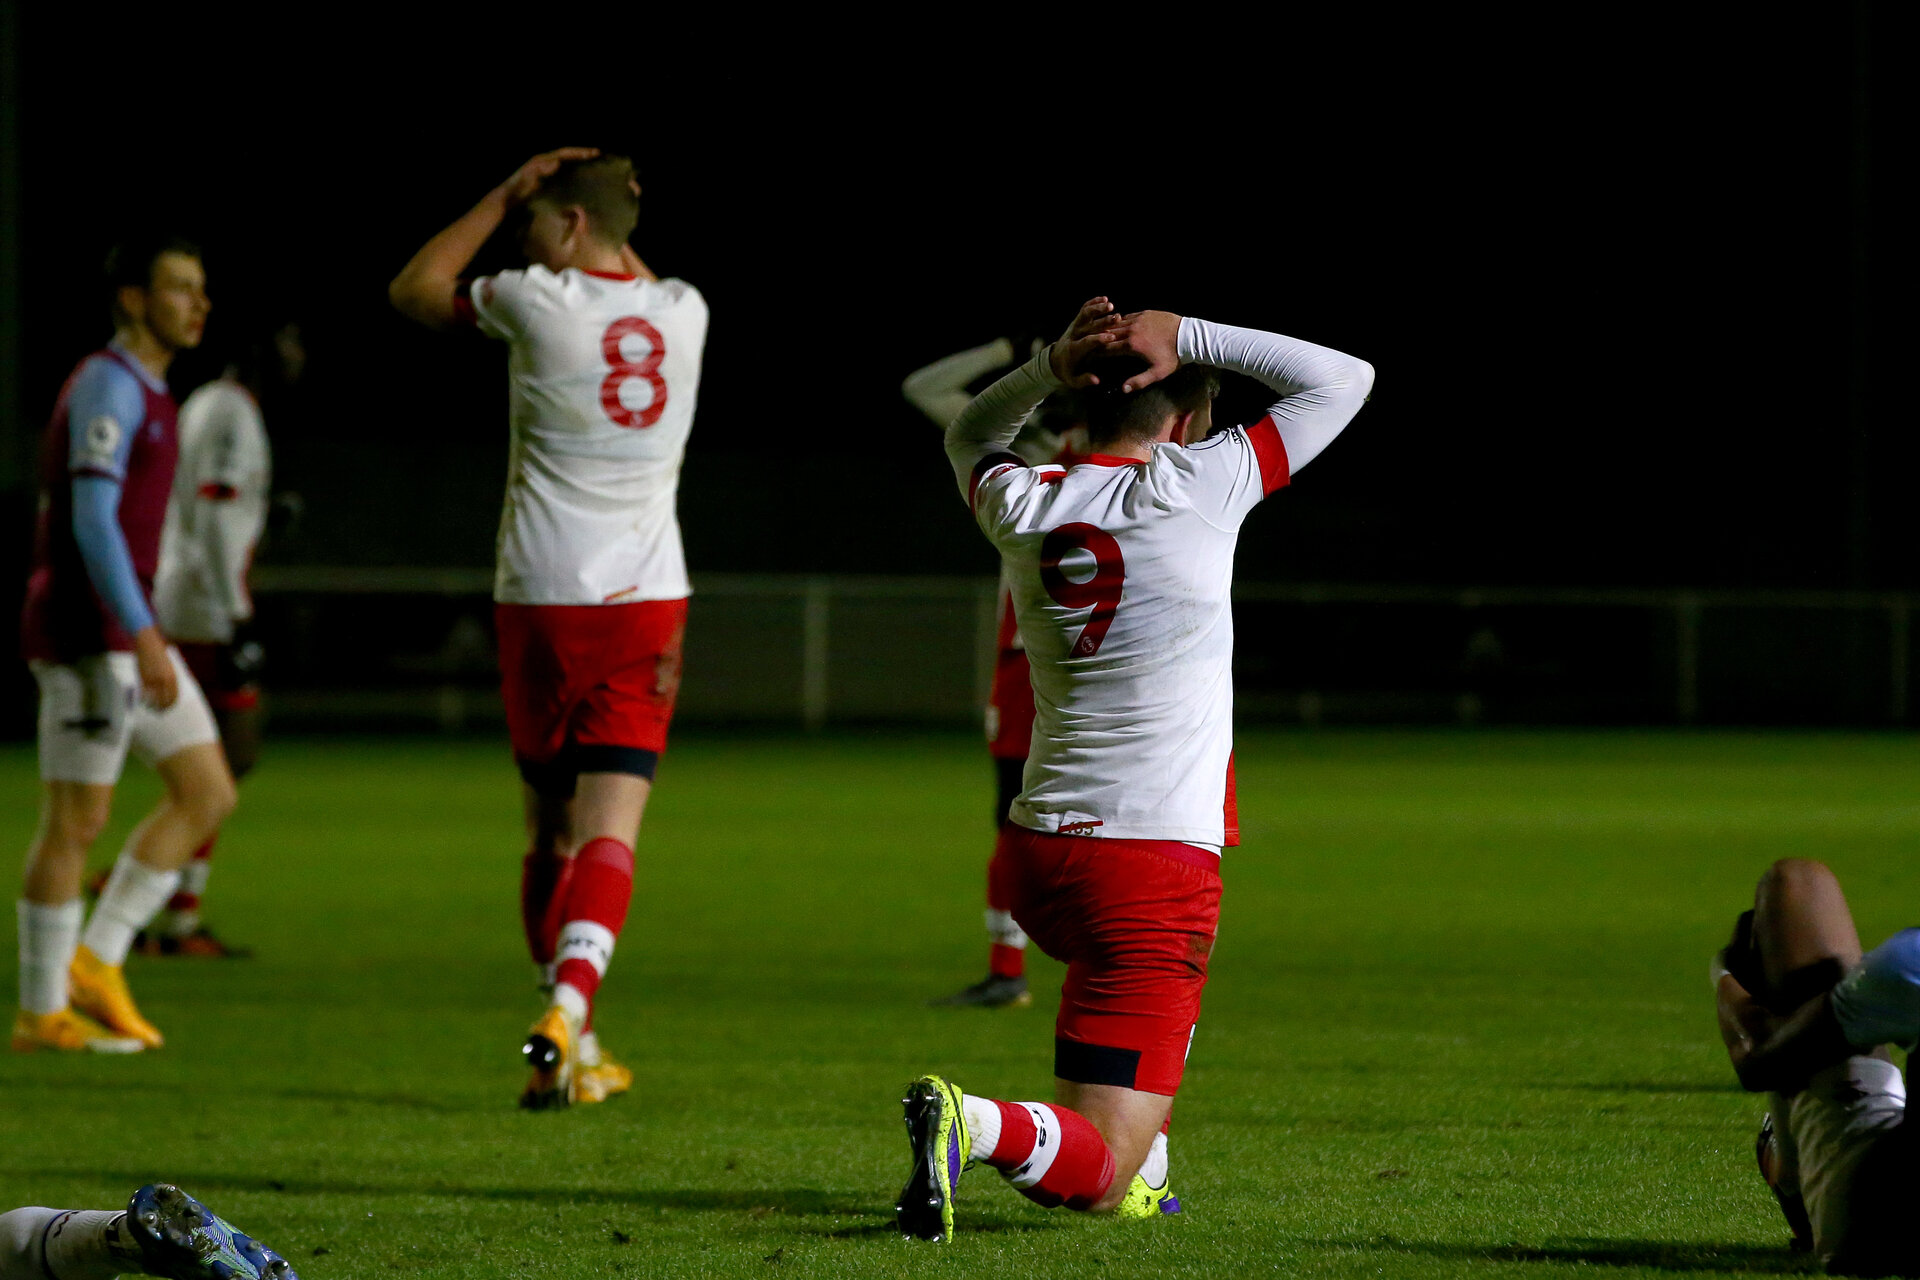 LONDON, ENGLAND - JANUARY 29: during the Premier League 2 match between West Ham United and Southampton B Team at Rush Green Training Ground on January 29, 2021 in London, England. (Photo by Isabelle Field/Southampton FC via Getty Images)